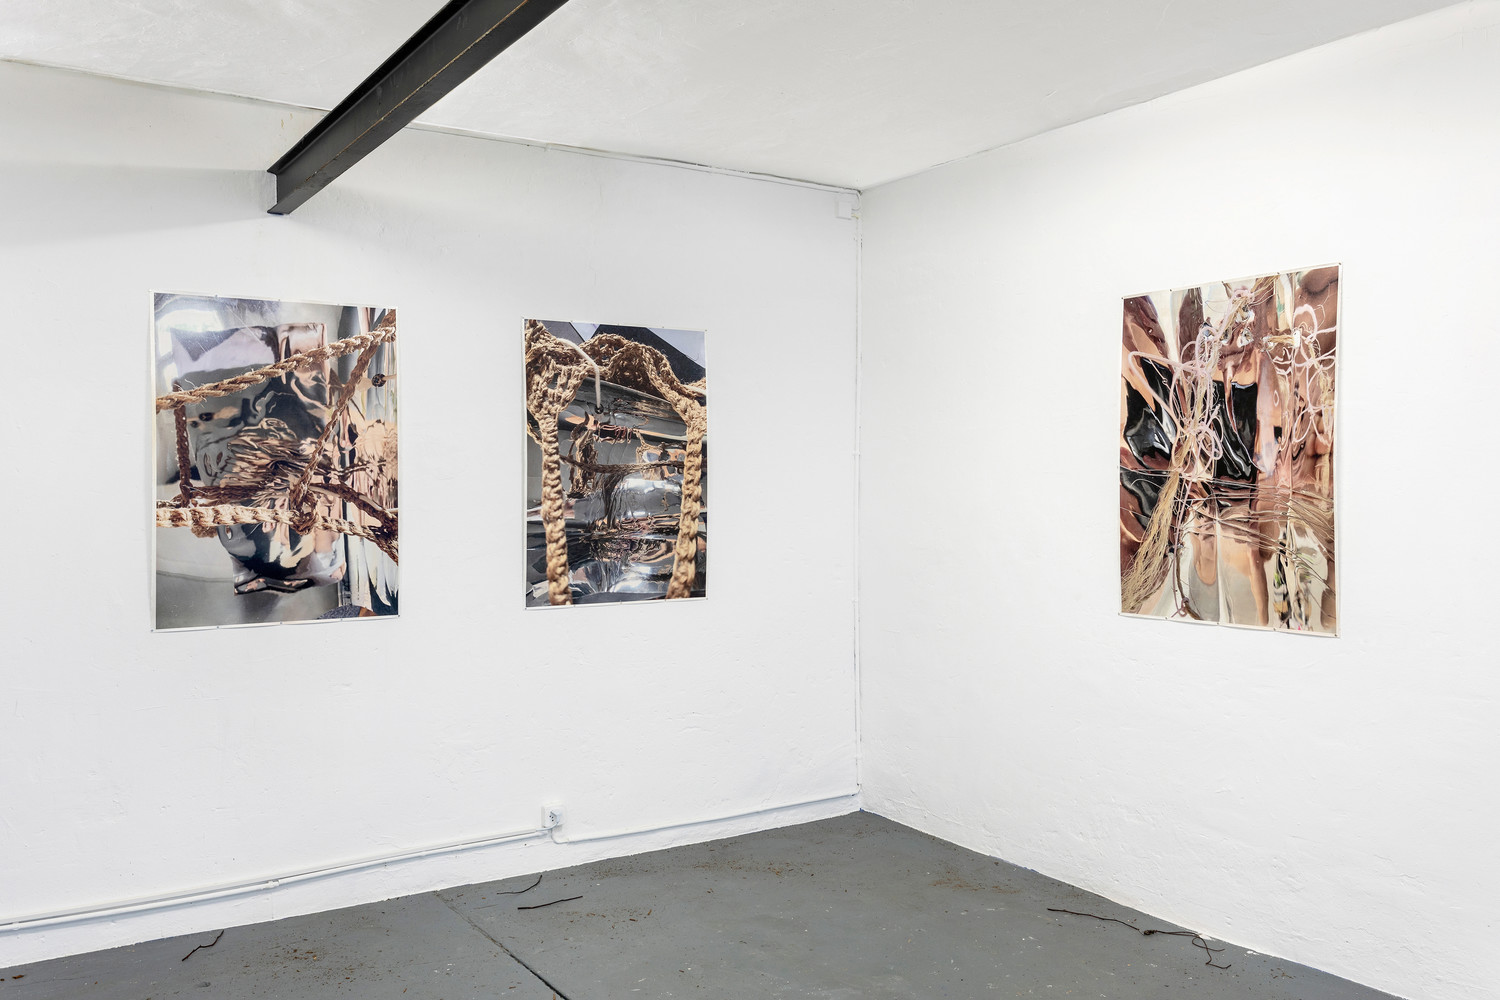 Self-portrait 3-4-5 [from left to right], 2020, acrylic and ink on paper, each 107x 78cm — © Manon Wertenbroek